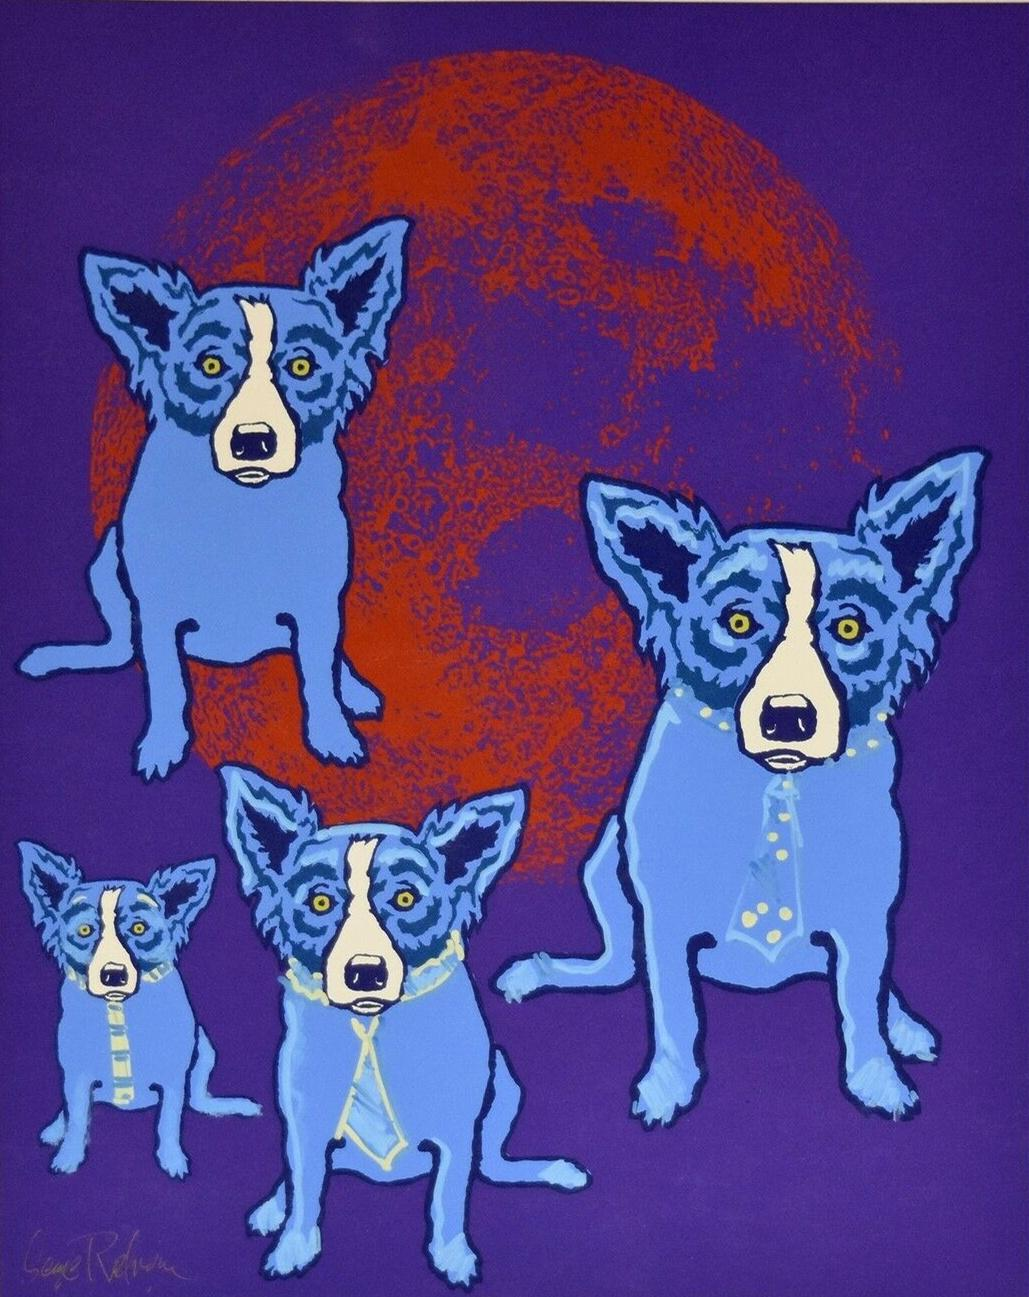 George Rodrigue Blue Dog Original Hand Embellished MM Red Moon Home Decor Handcrafts /HD Print Oil Painting On Canvas Wall Art 200113